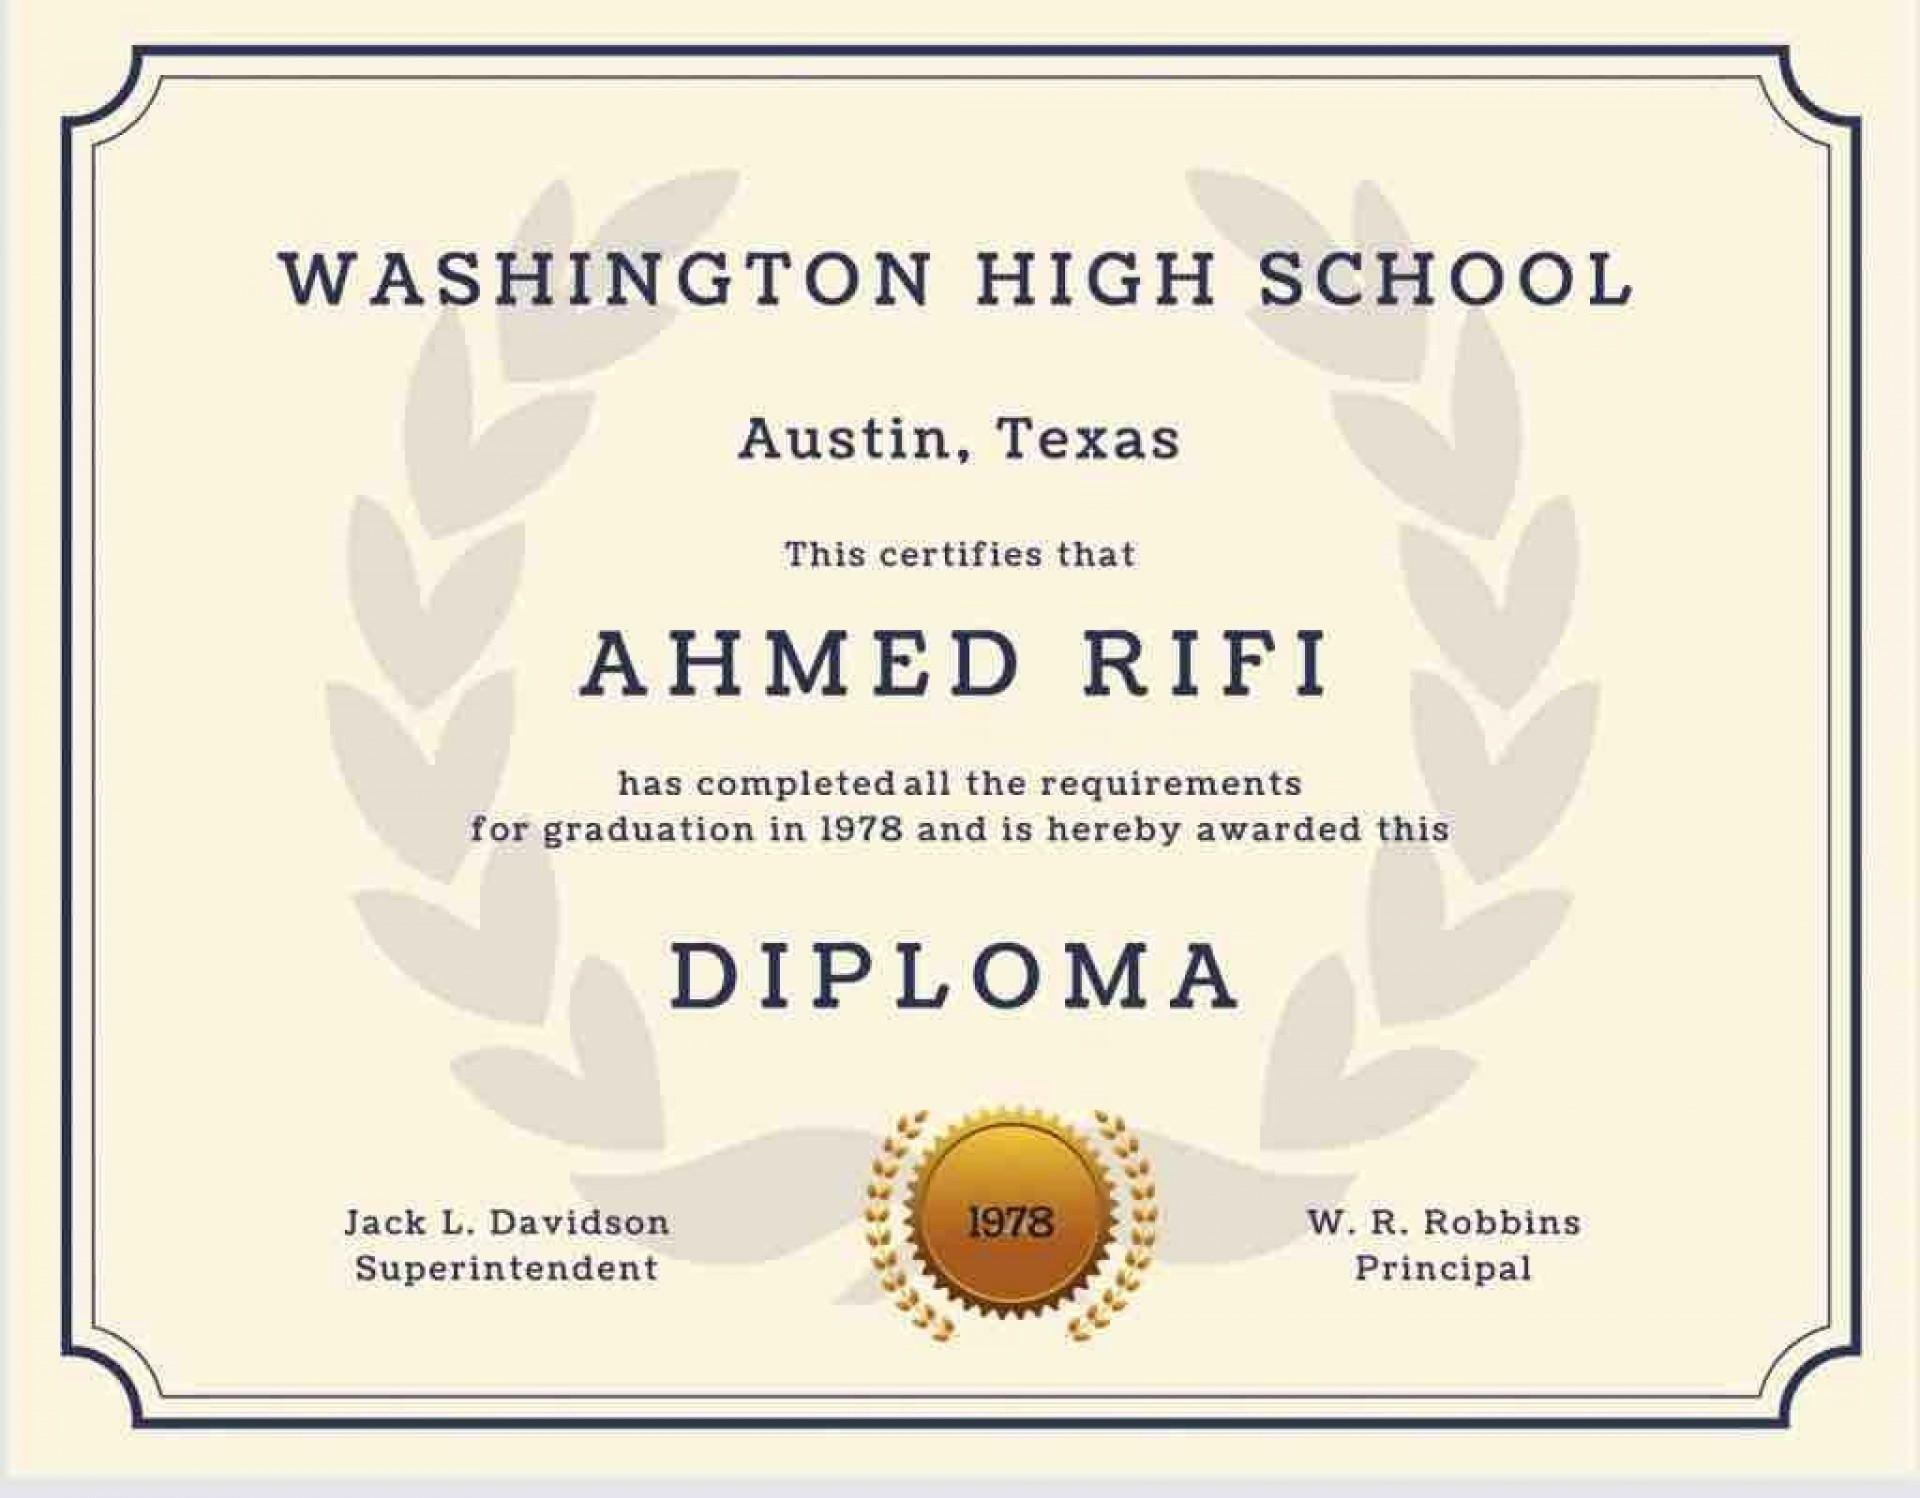 003 Staggering High School Diploma Template Concept  With Seal Homeschool Free Printable Blank1920